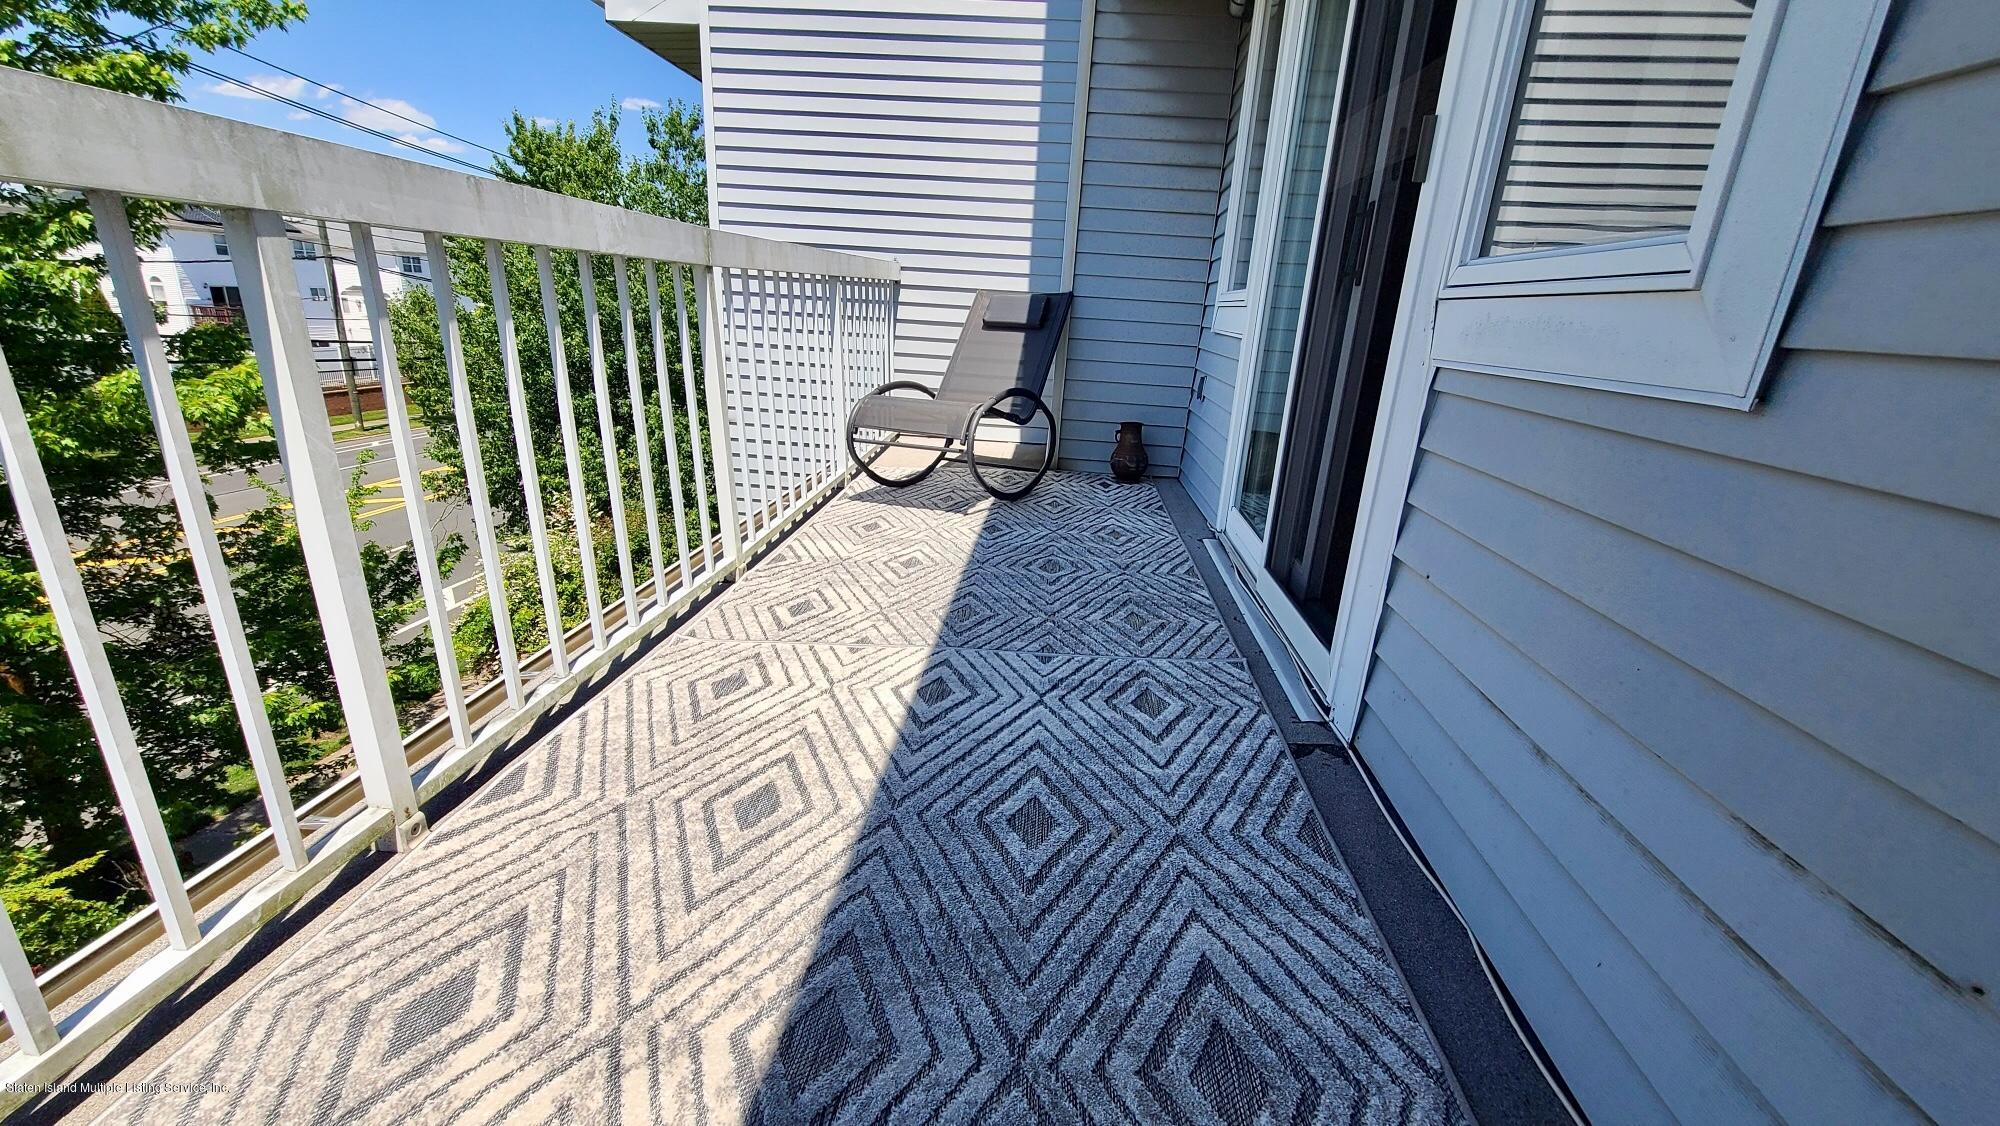 Single Family - Attached 162 Admiralty Loop  Staten Island, NY 10309, MLS-1136057-15